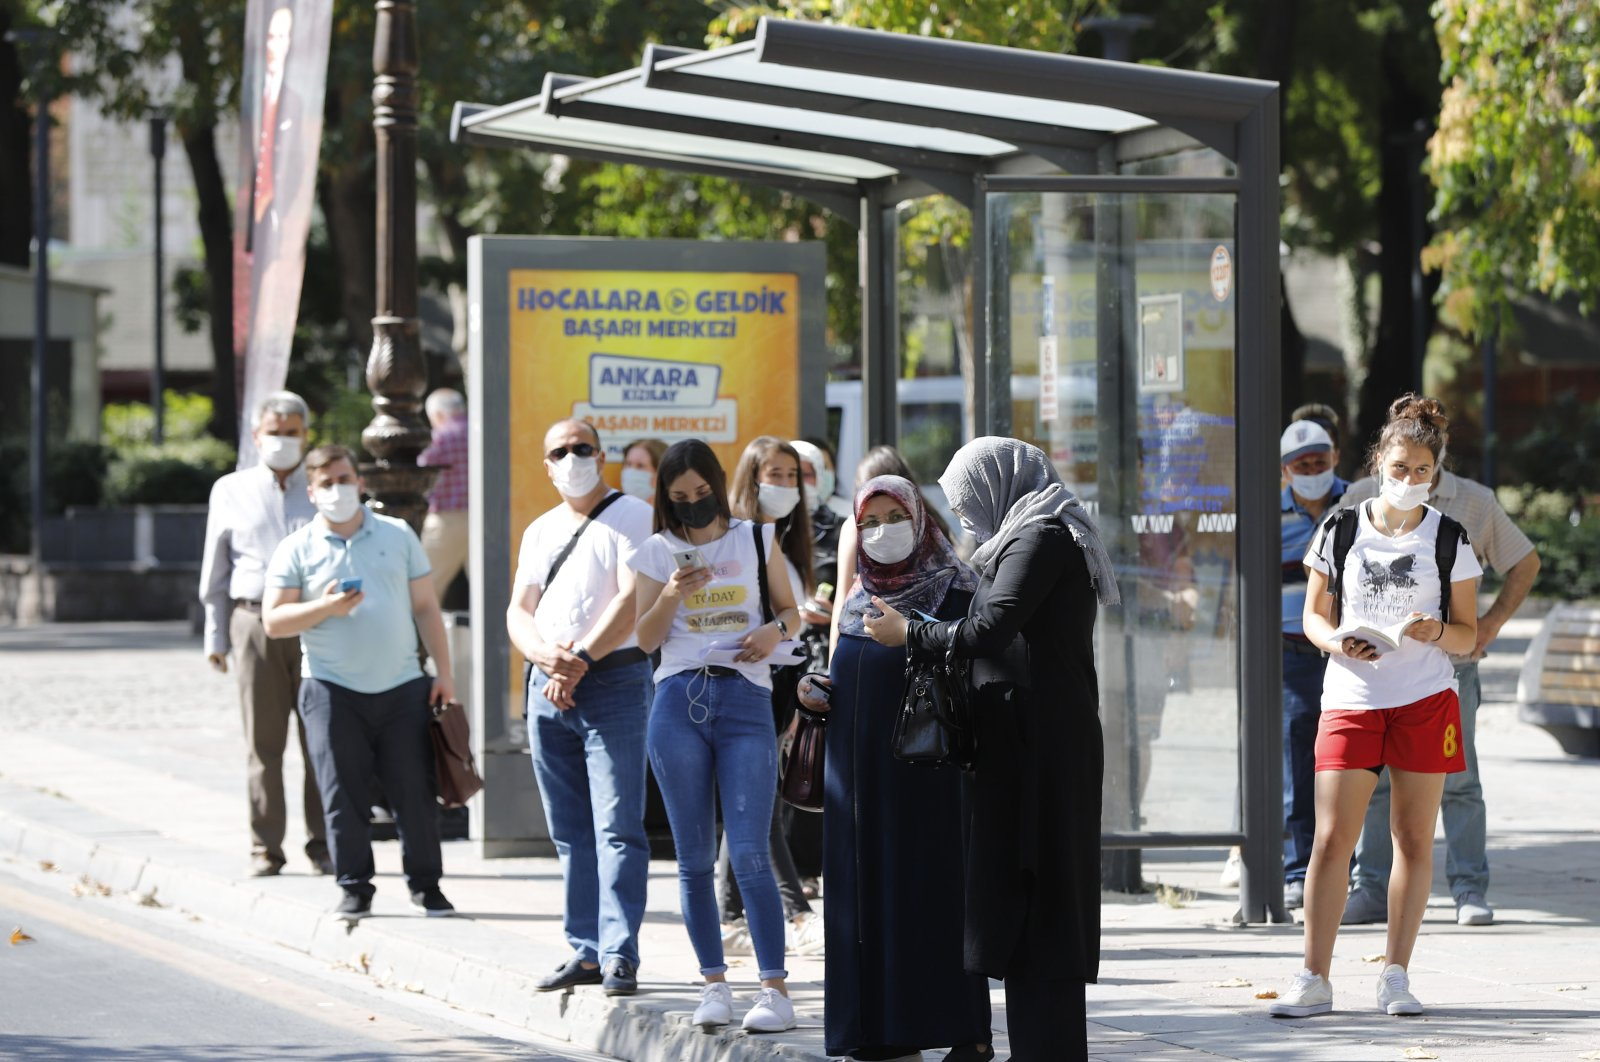 People wearing protective masks wait at a bus stop, in the capital Ankara, Turkey, Sept. 3, 2020. (DHA Photo)